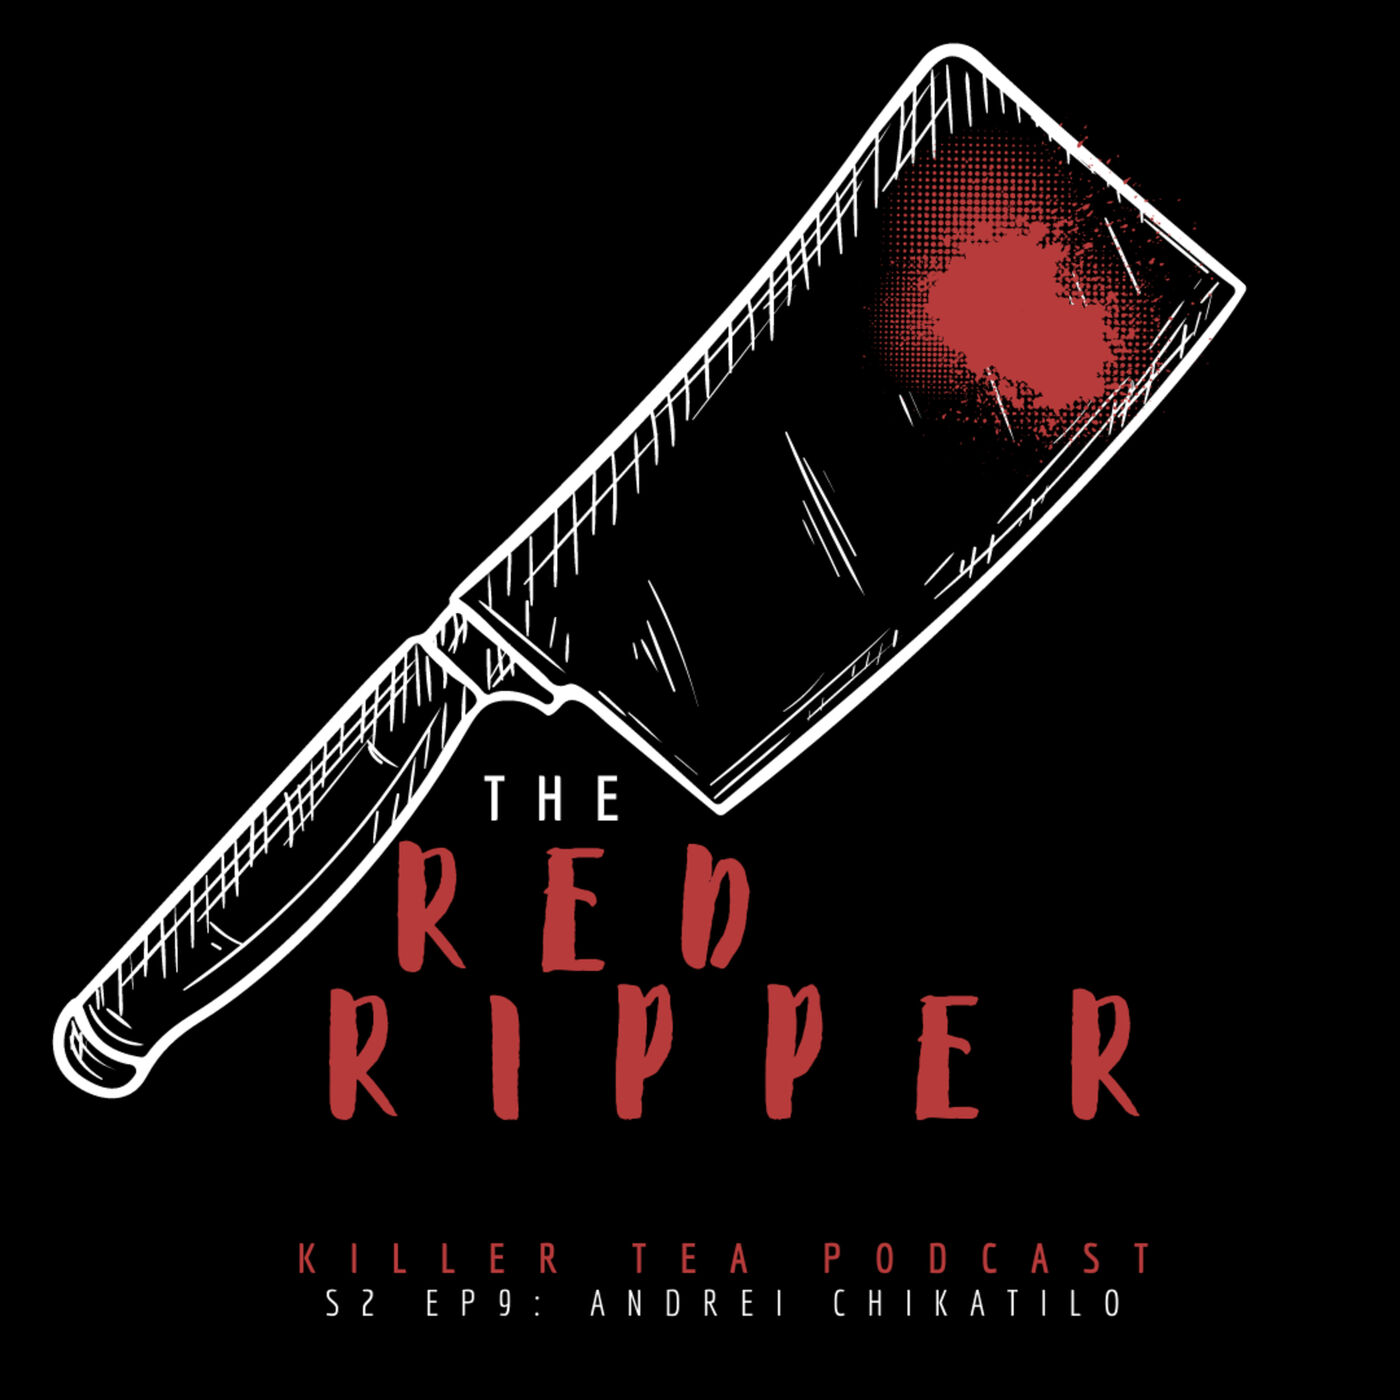 S2 Ep. 09 ANDREI CHIKATILO    The Red Ripper